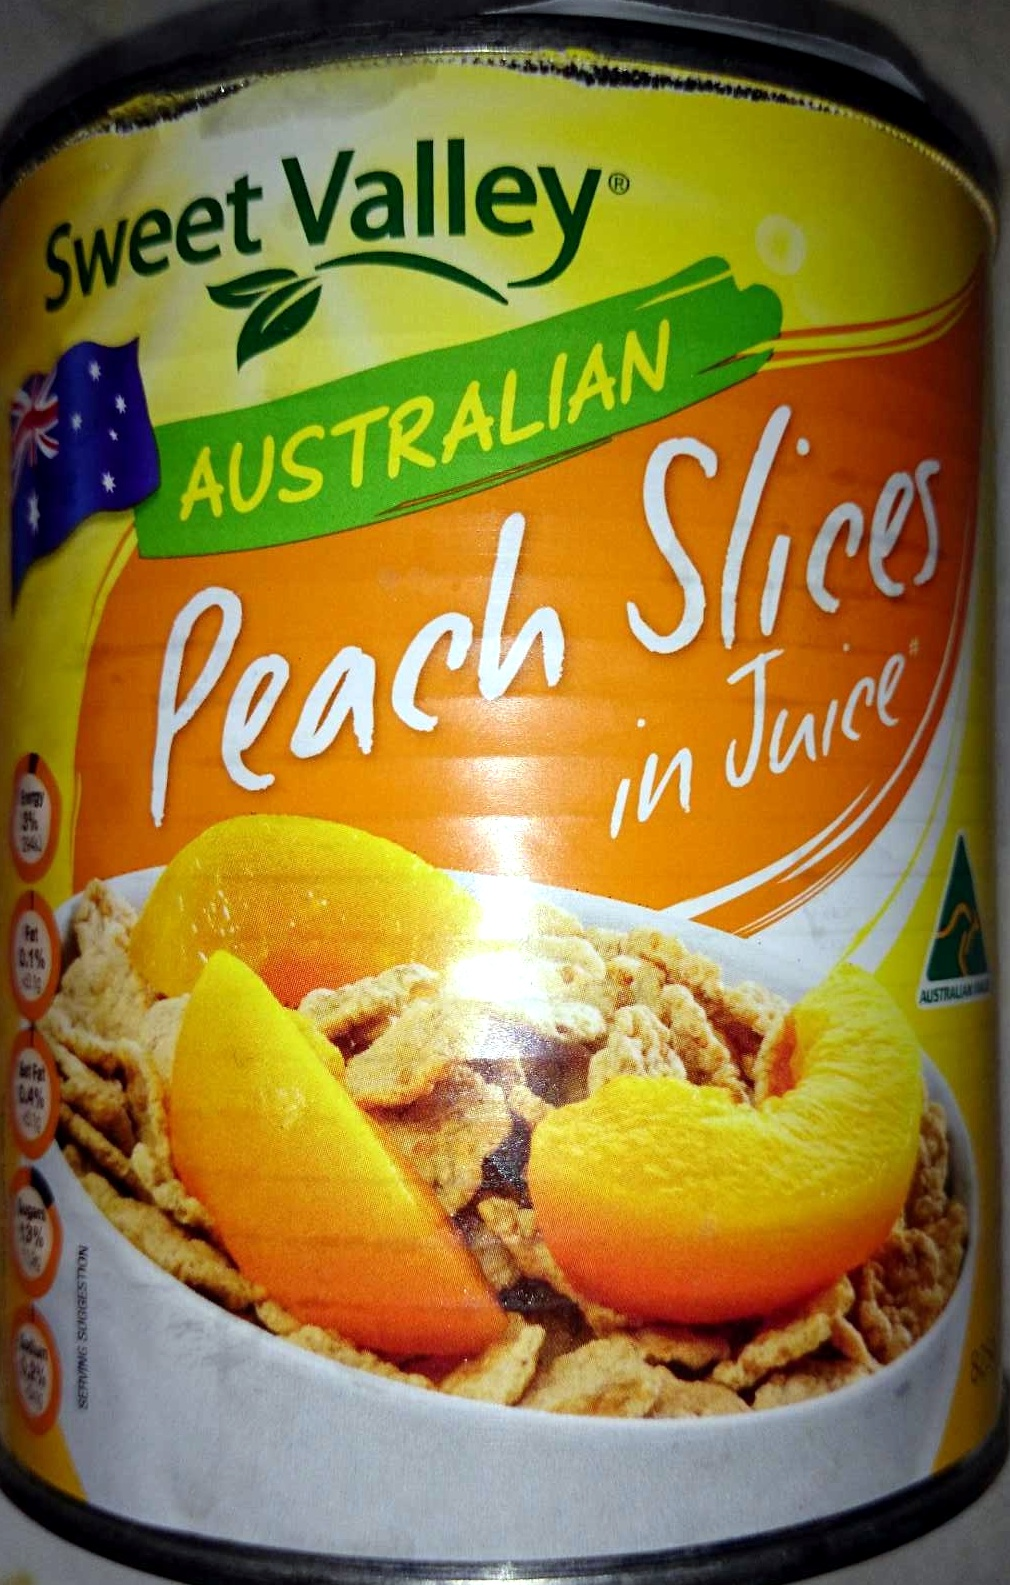 Australian peach slices in juice sweet valley 825 g for Australian cuisine facts